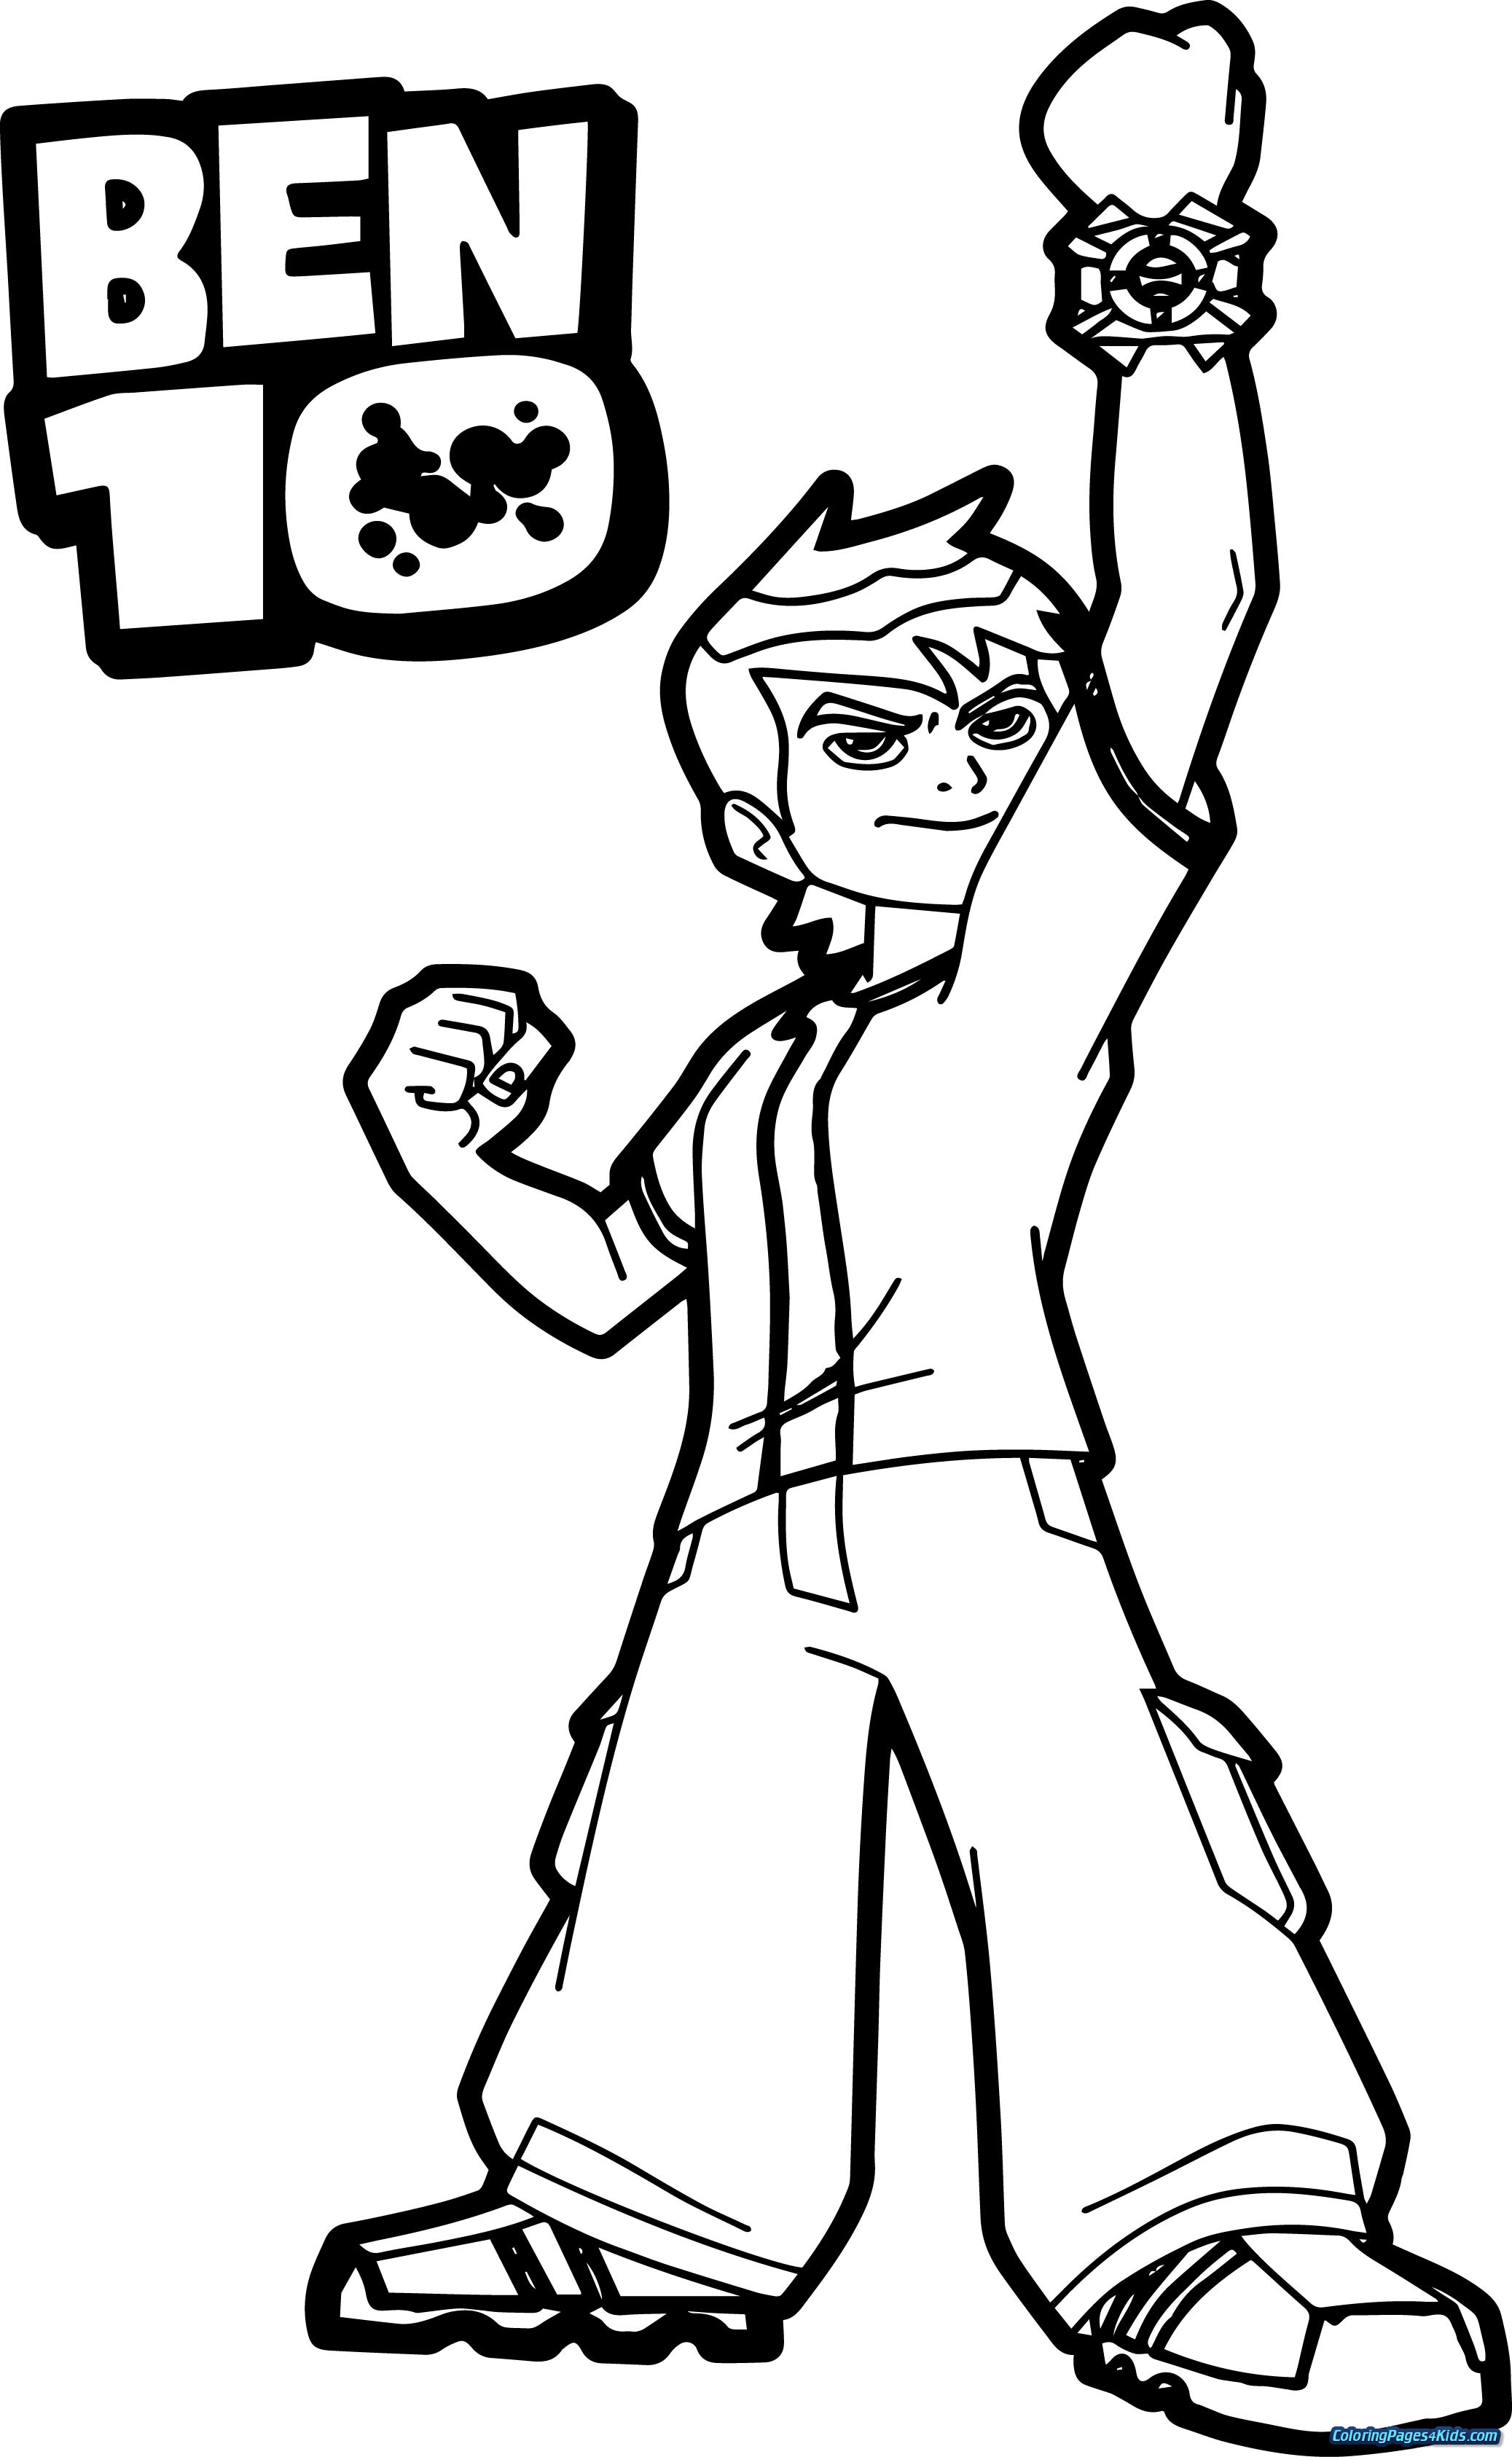 ben 10 coloring pictures free ben 10 coloring pages pictures ben coloring 10